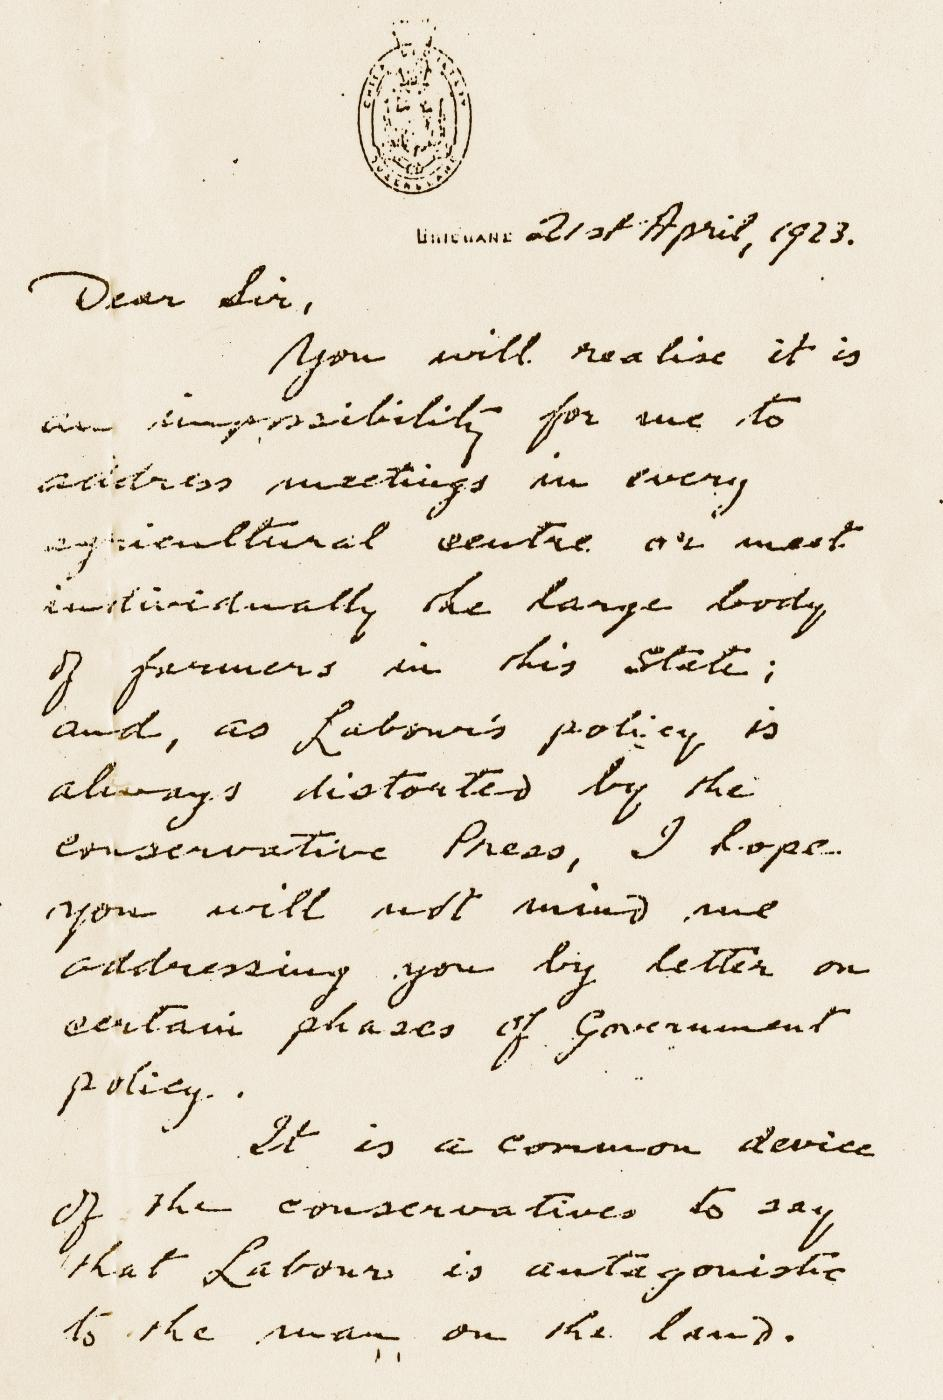 Letter from Premier Edward Theodore